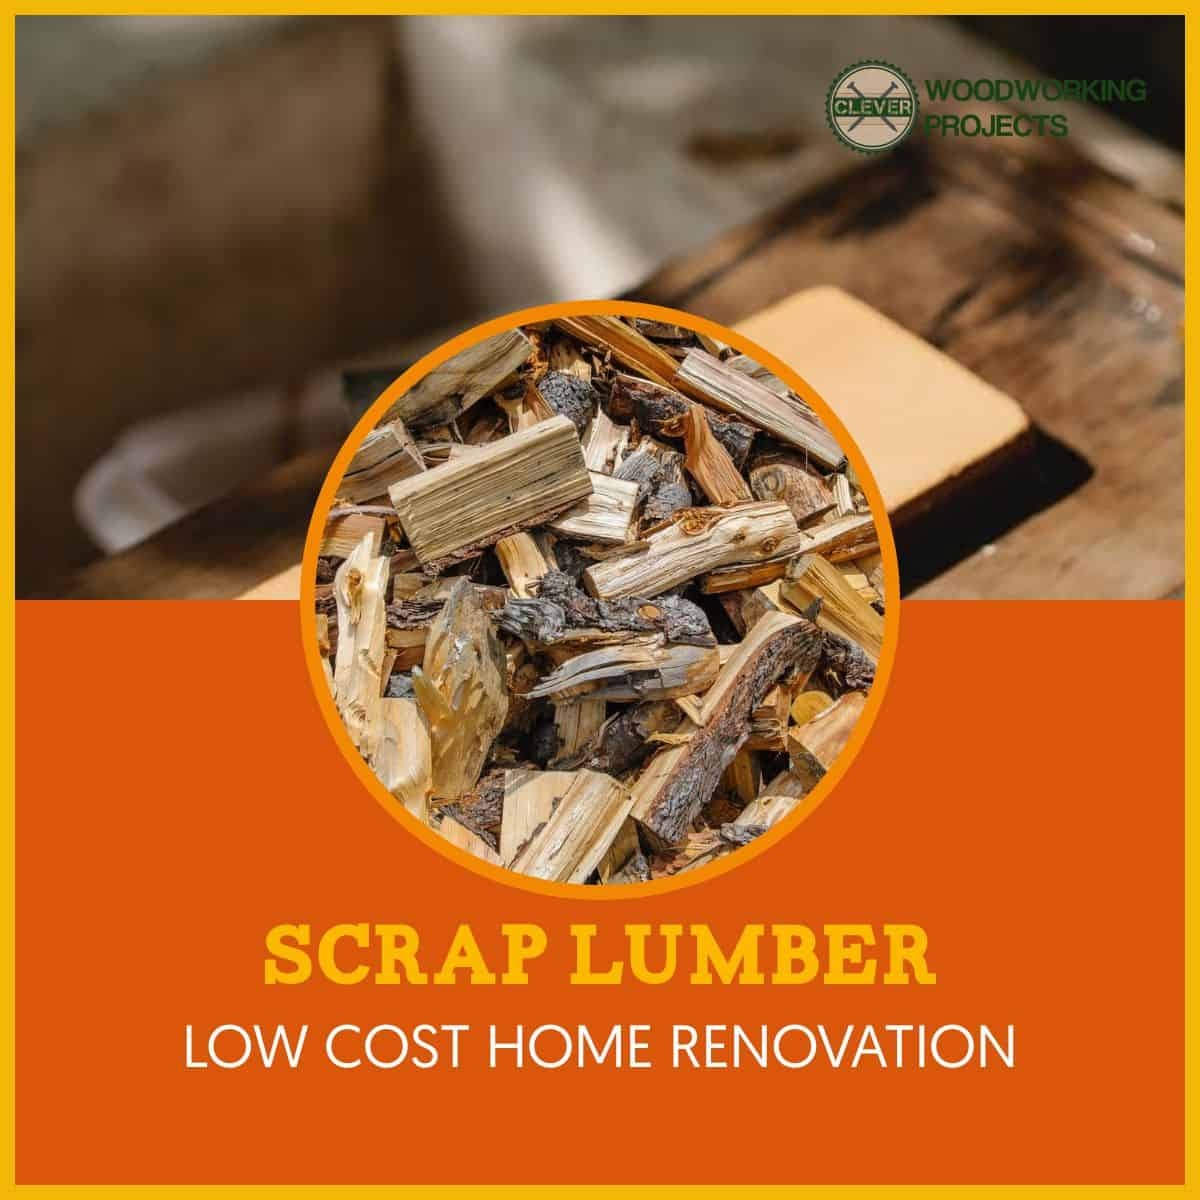 Scrap Lumber - The Low-Cost Solution to Renovating Your Home